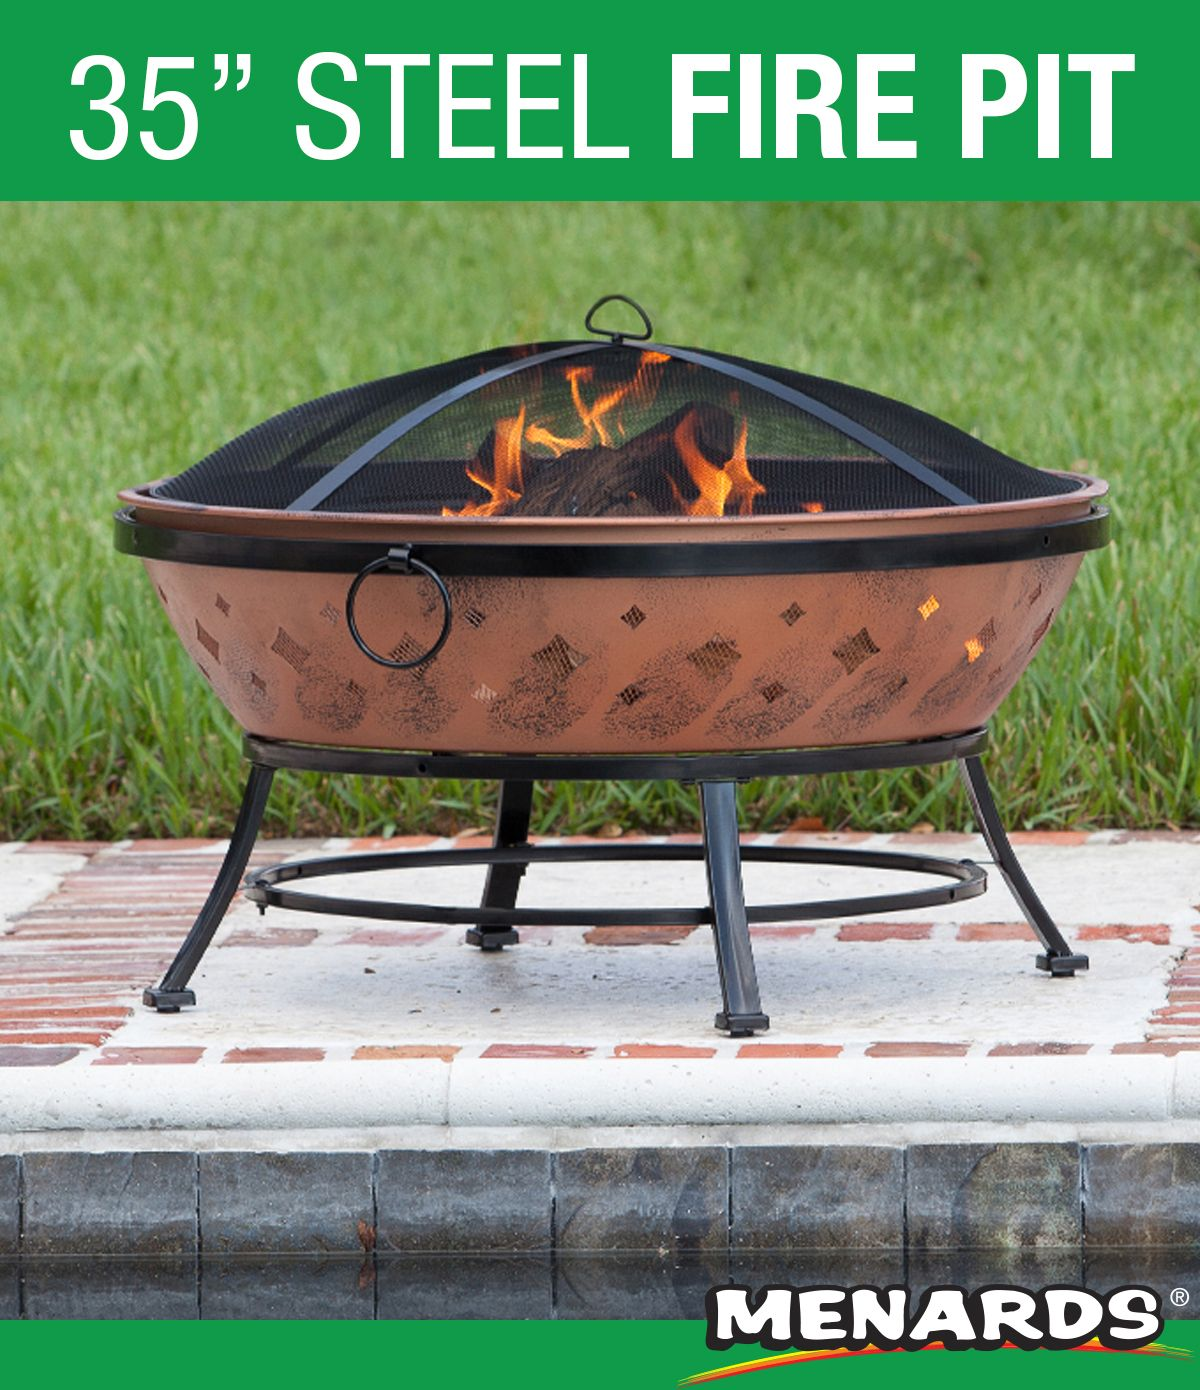 The Oversized Bowl Is Perfect For Building Larger Fires For Outdoor Backyard Gatherings This 35 Inch W Wood Burning Fire Pit Fire Pit Steel Fire Pit